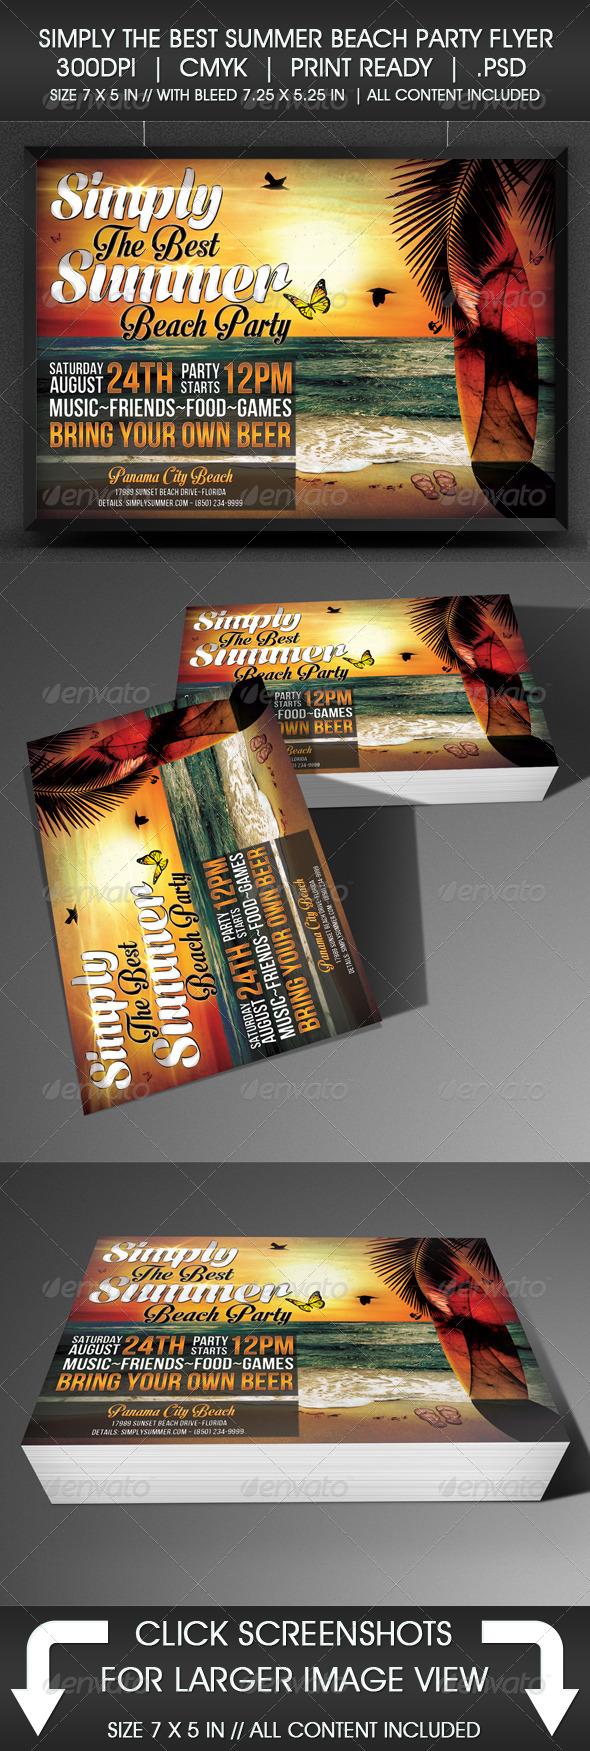 GraphicRiver Simply The Best Summer Beach Party Flyer 5366557